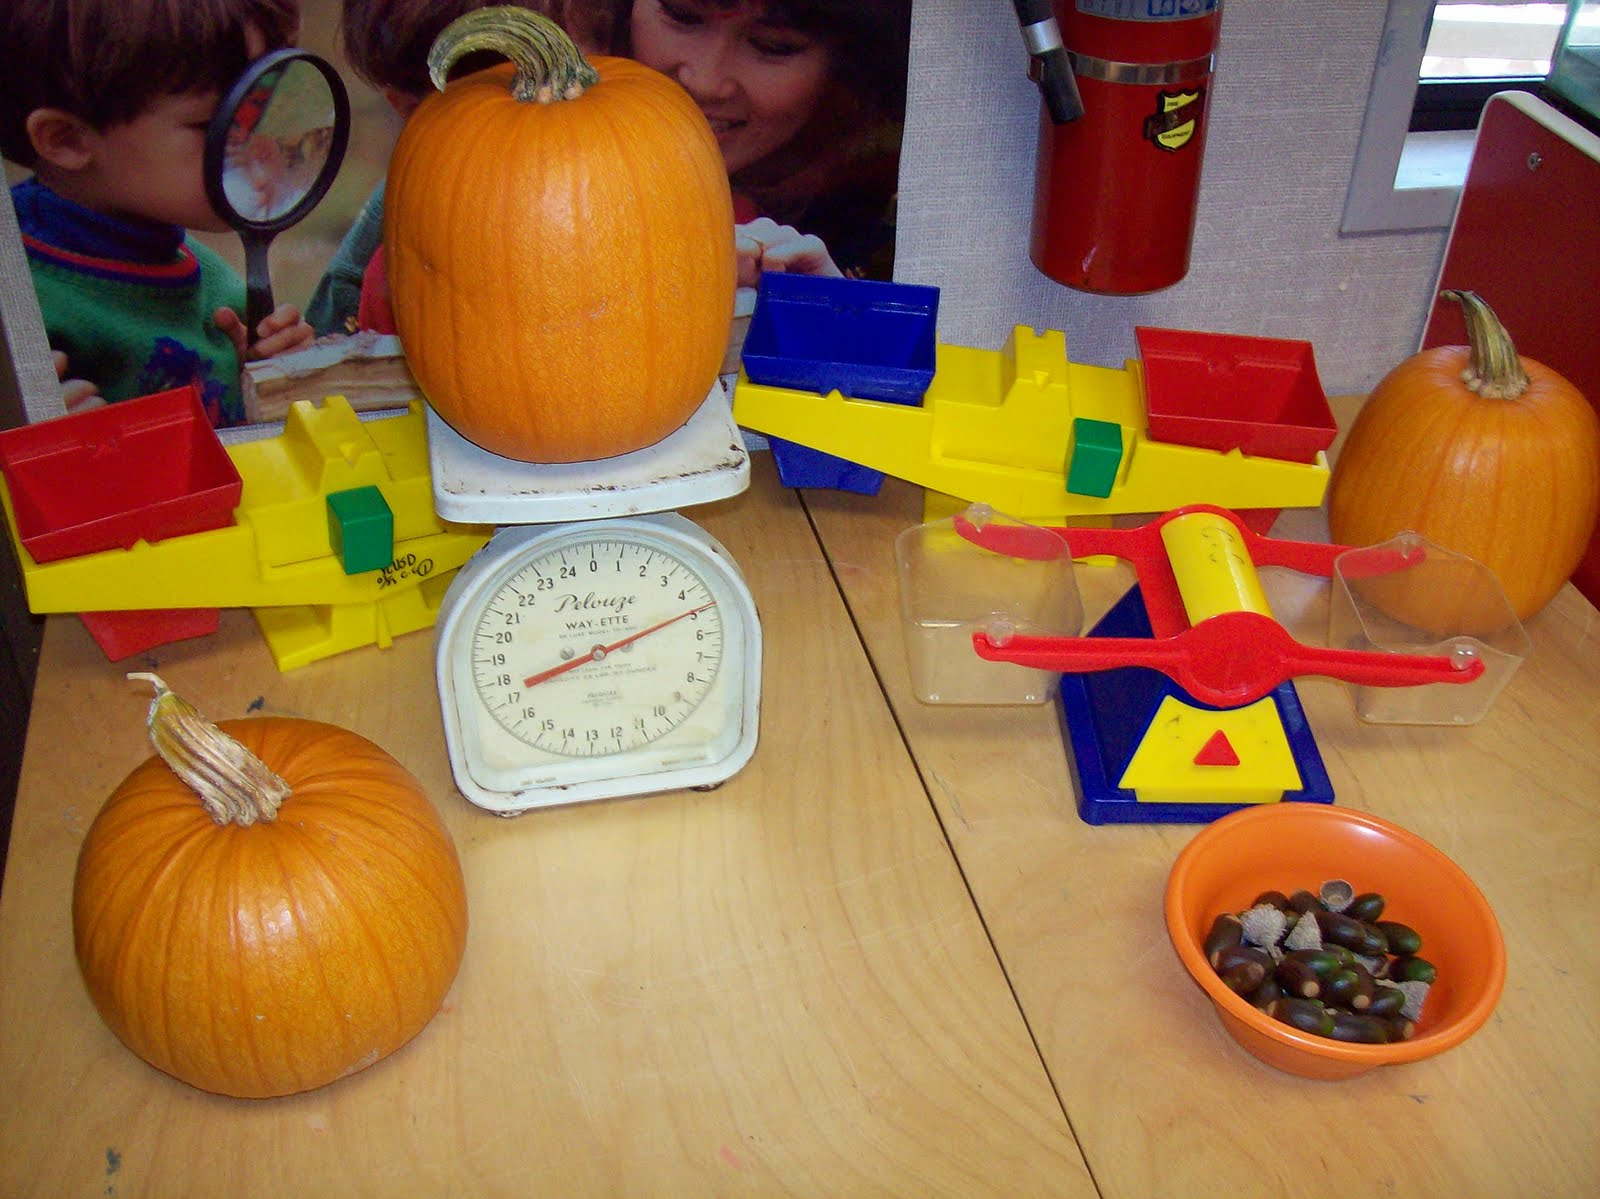 Learning And Teaching With Preschoolers Math Rich Preschool Classroom Environment Part 2